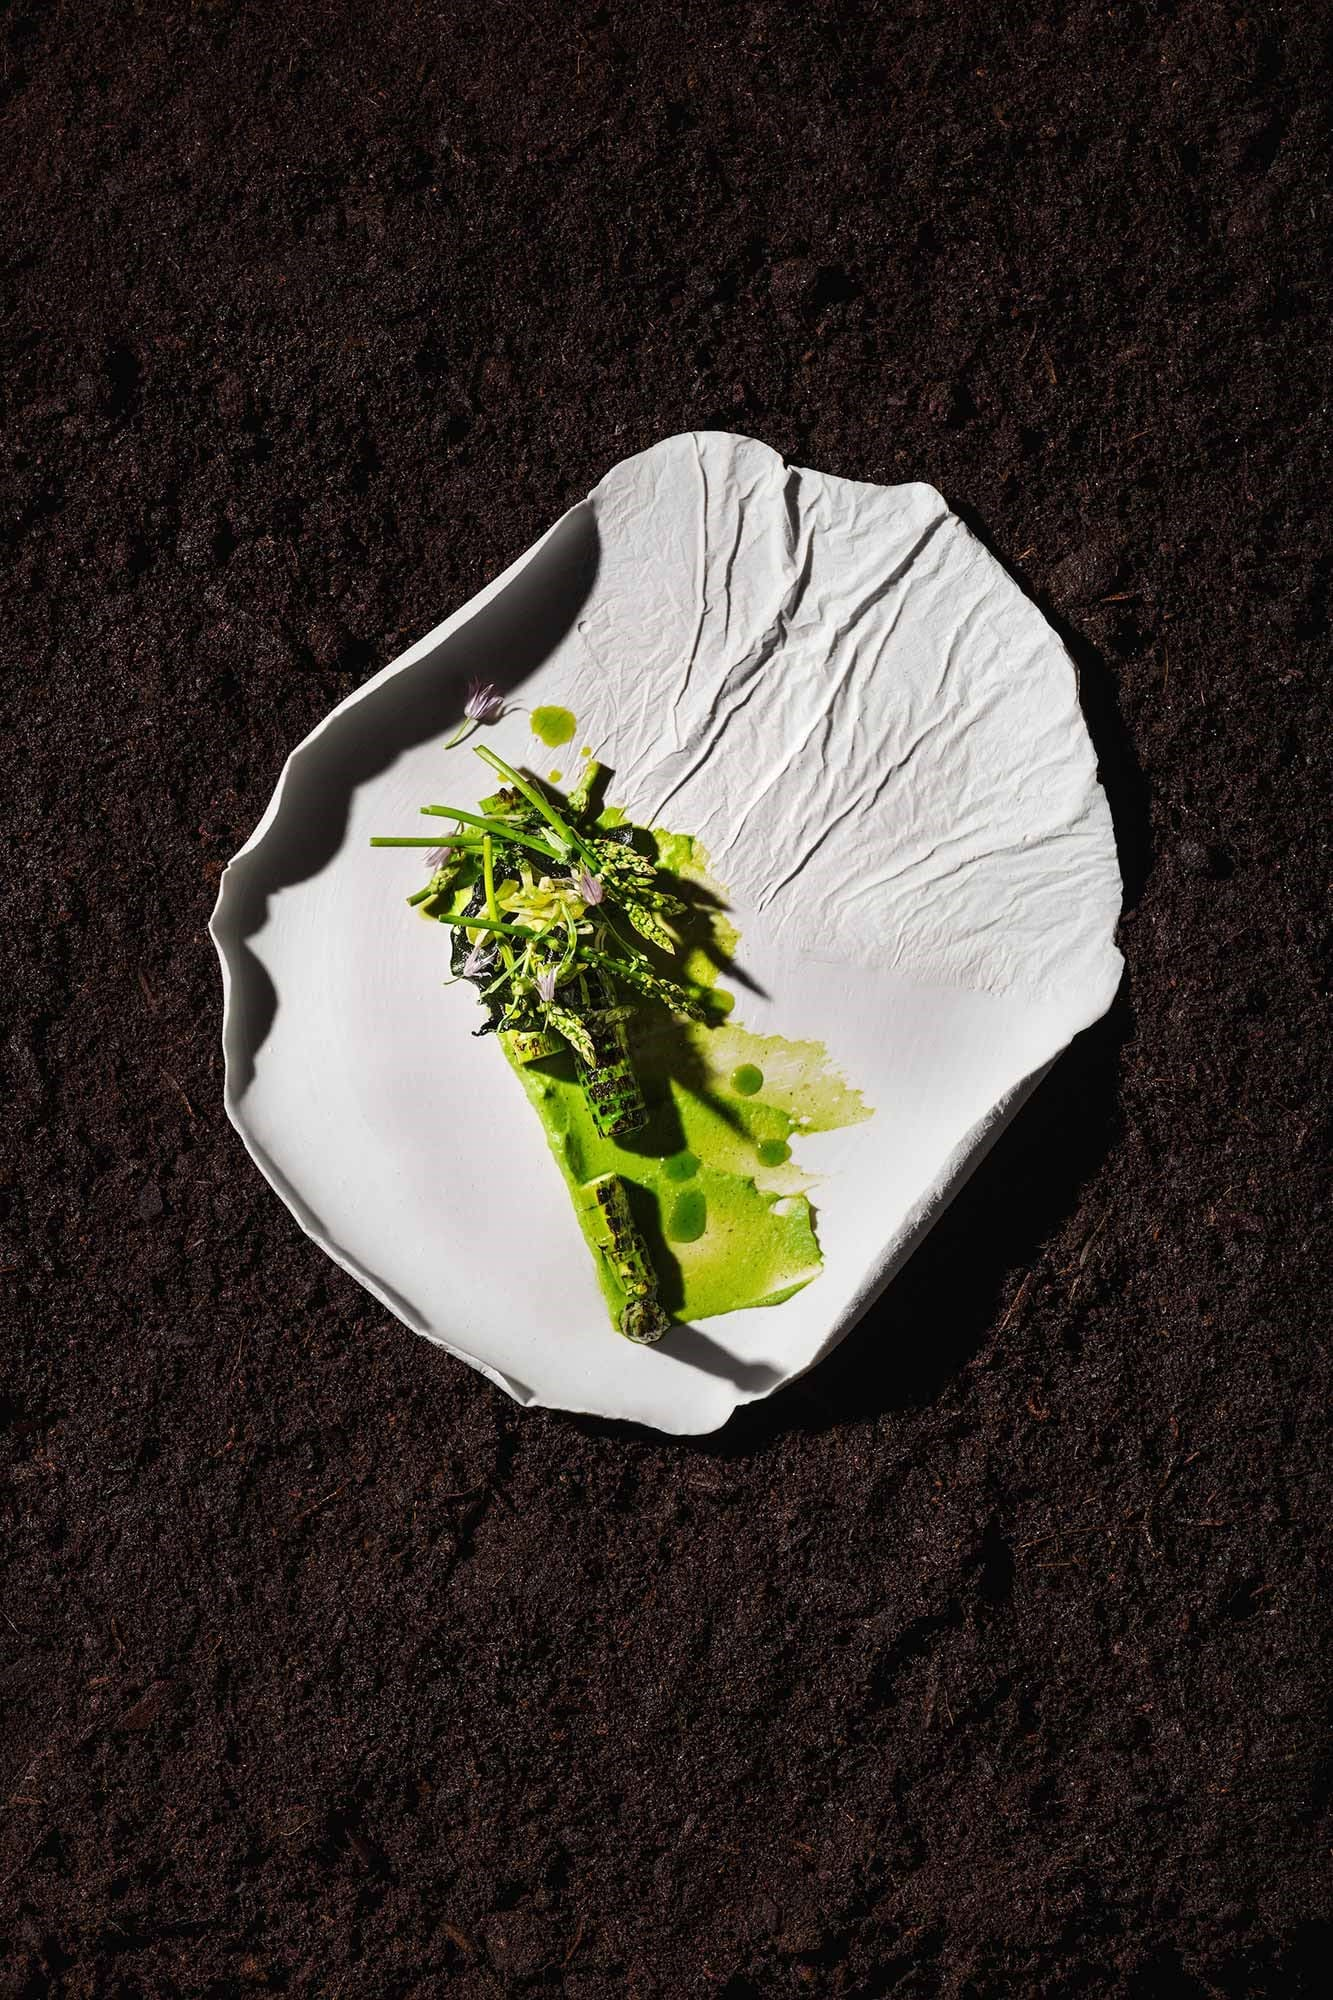 Burnt green asparagus served on a leaves plate by Aino Nebel